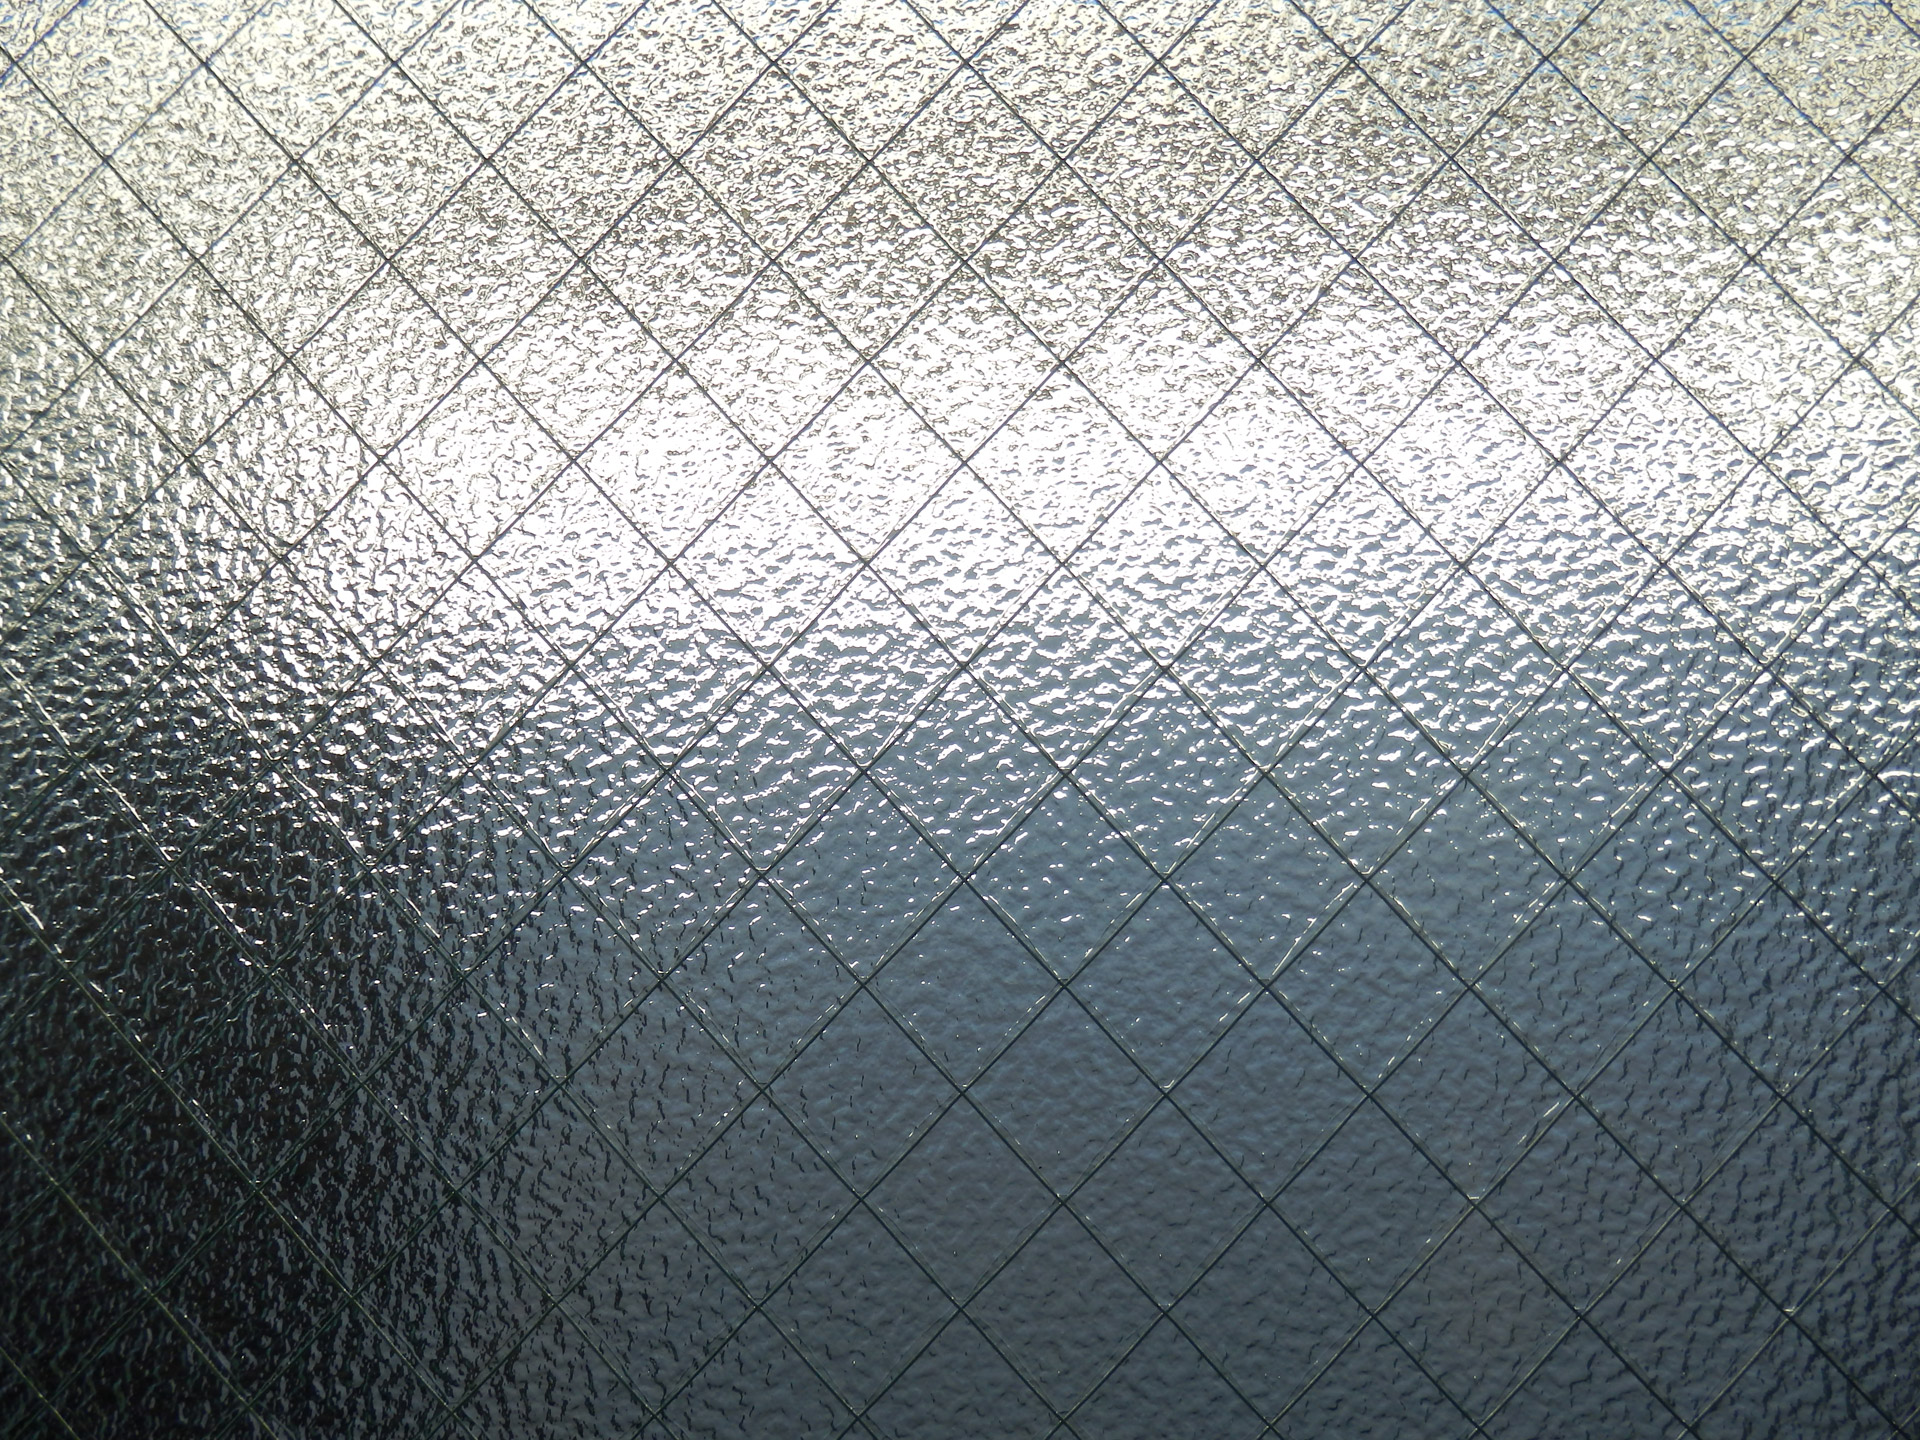 Glass Texture Free Stock Photo - Public Domain Pictures